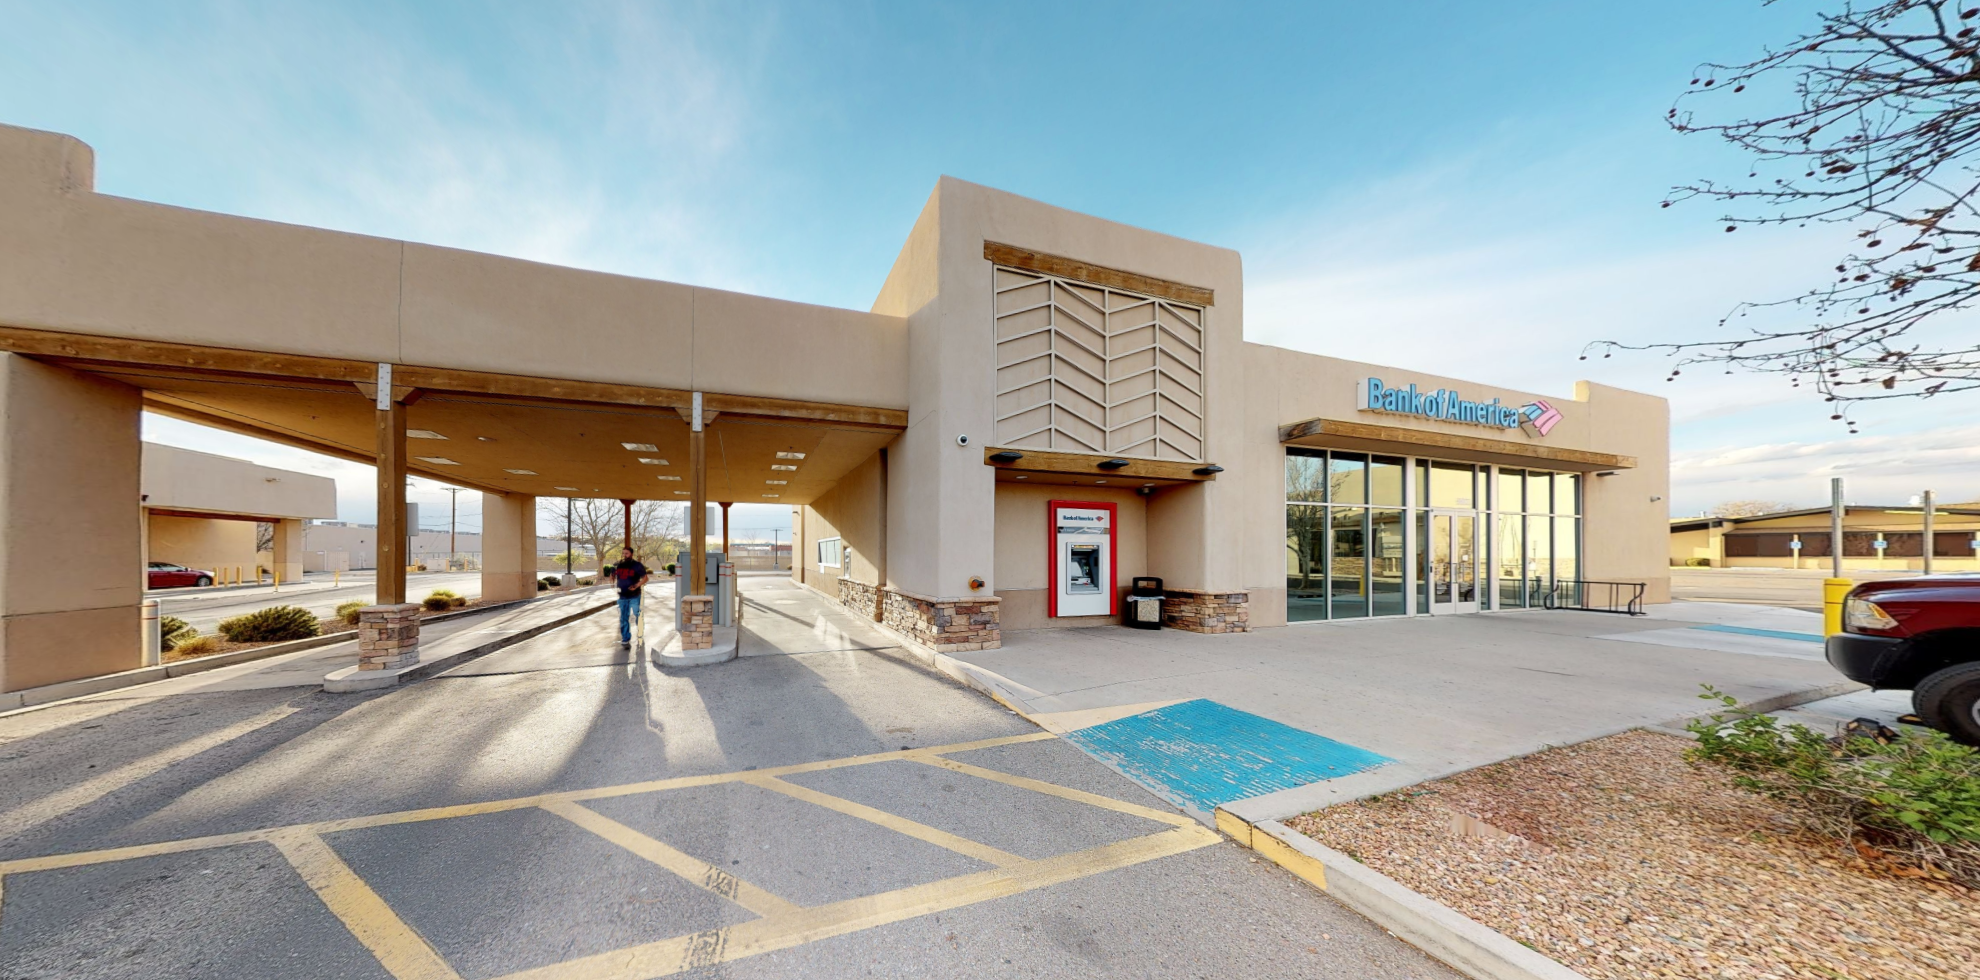 Bank of America financial center with drive-thru ATM | 6603 4th St NW, Albuquerque, NM 87107